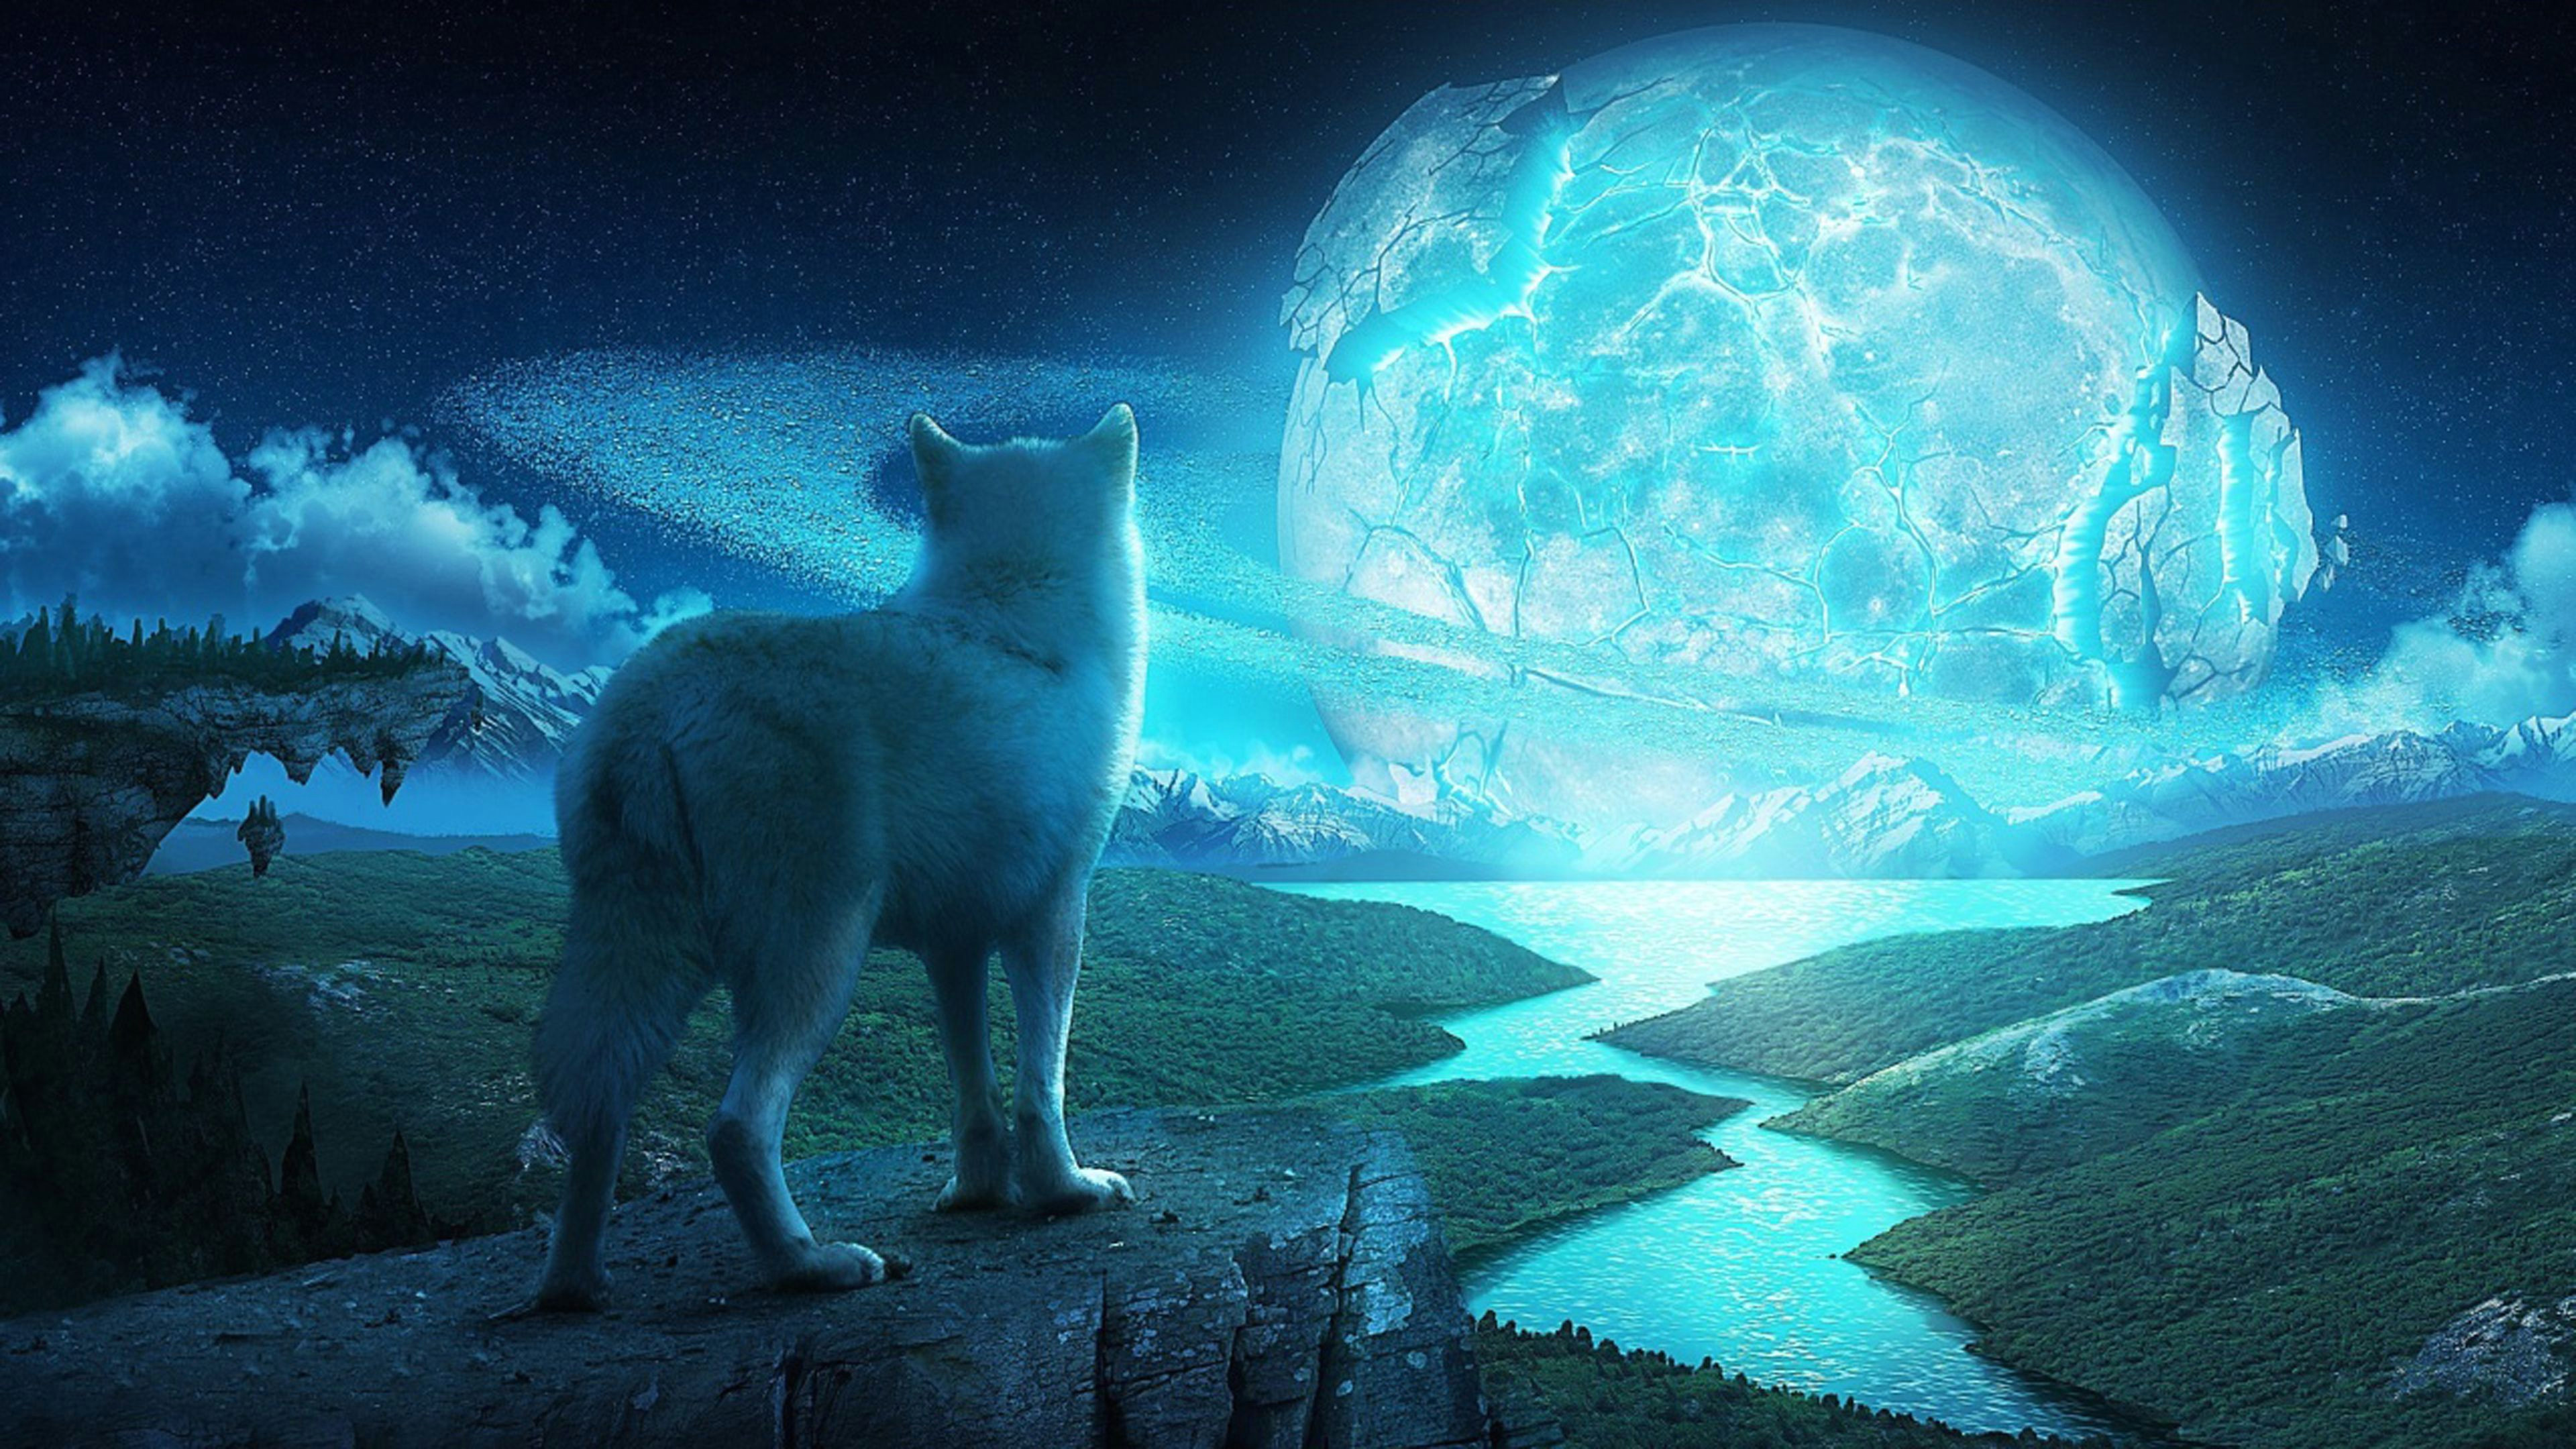 wolf in a fantasy world ultra hd 4k wallpaper